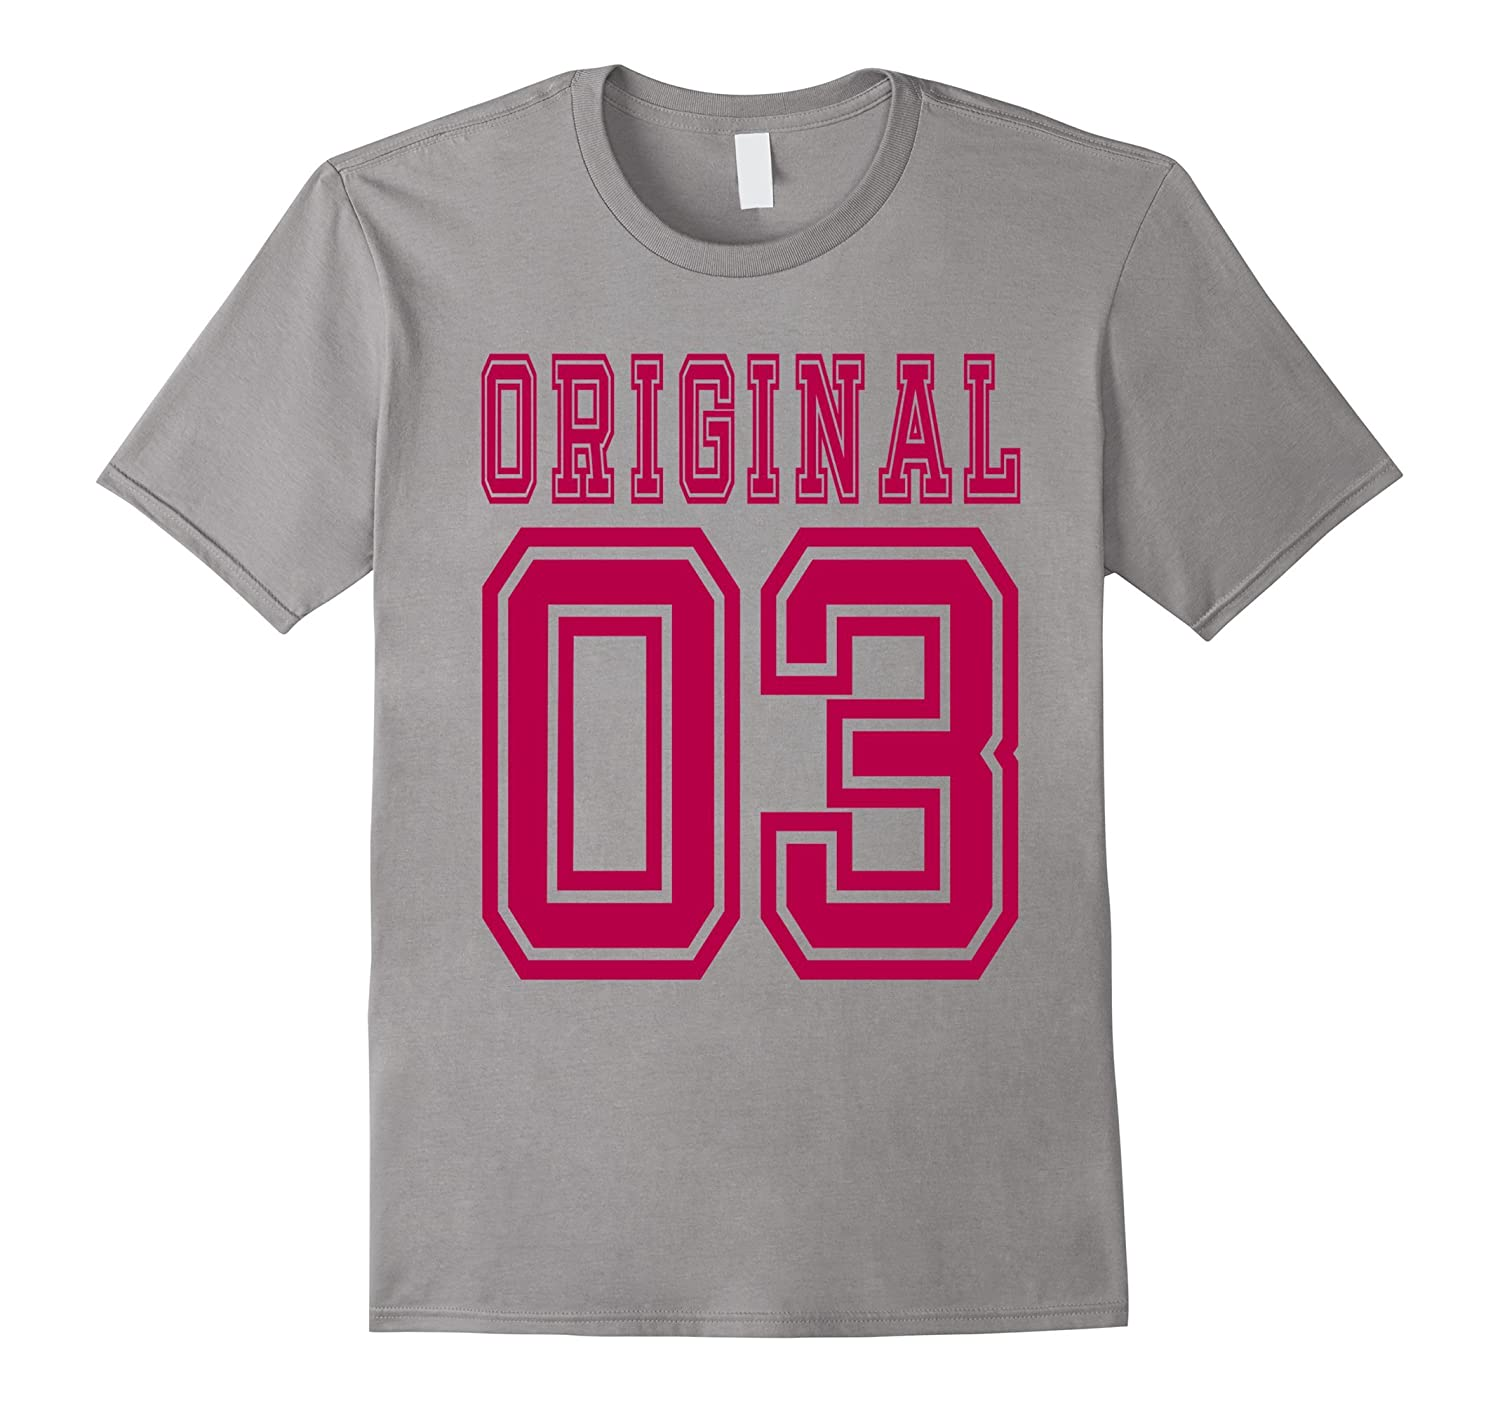 13th birthday Gift Idea 13 Year Old Girl Shirt 2003 Tee C-CL